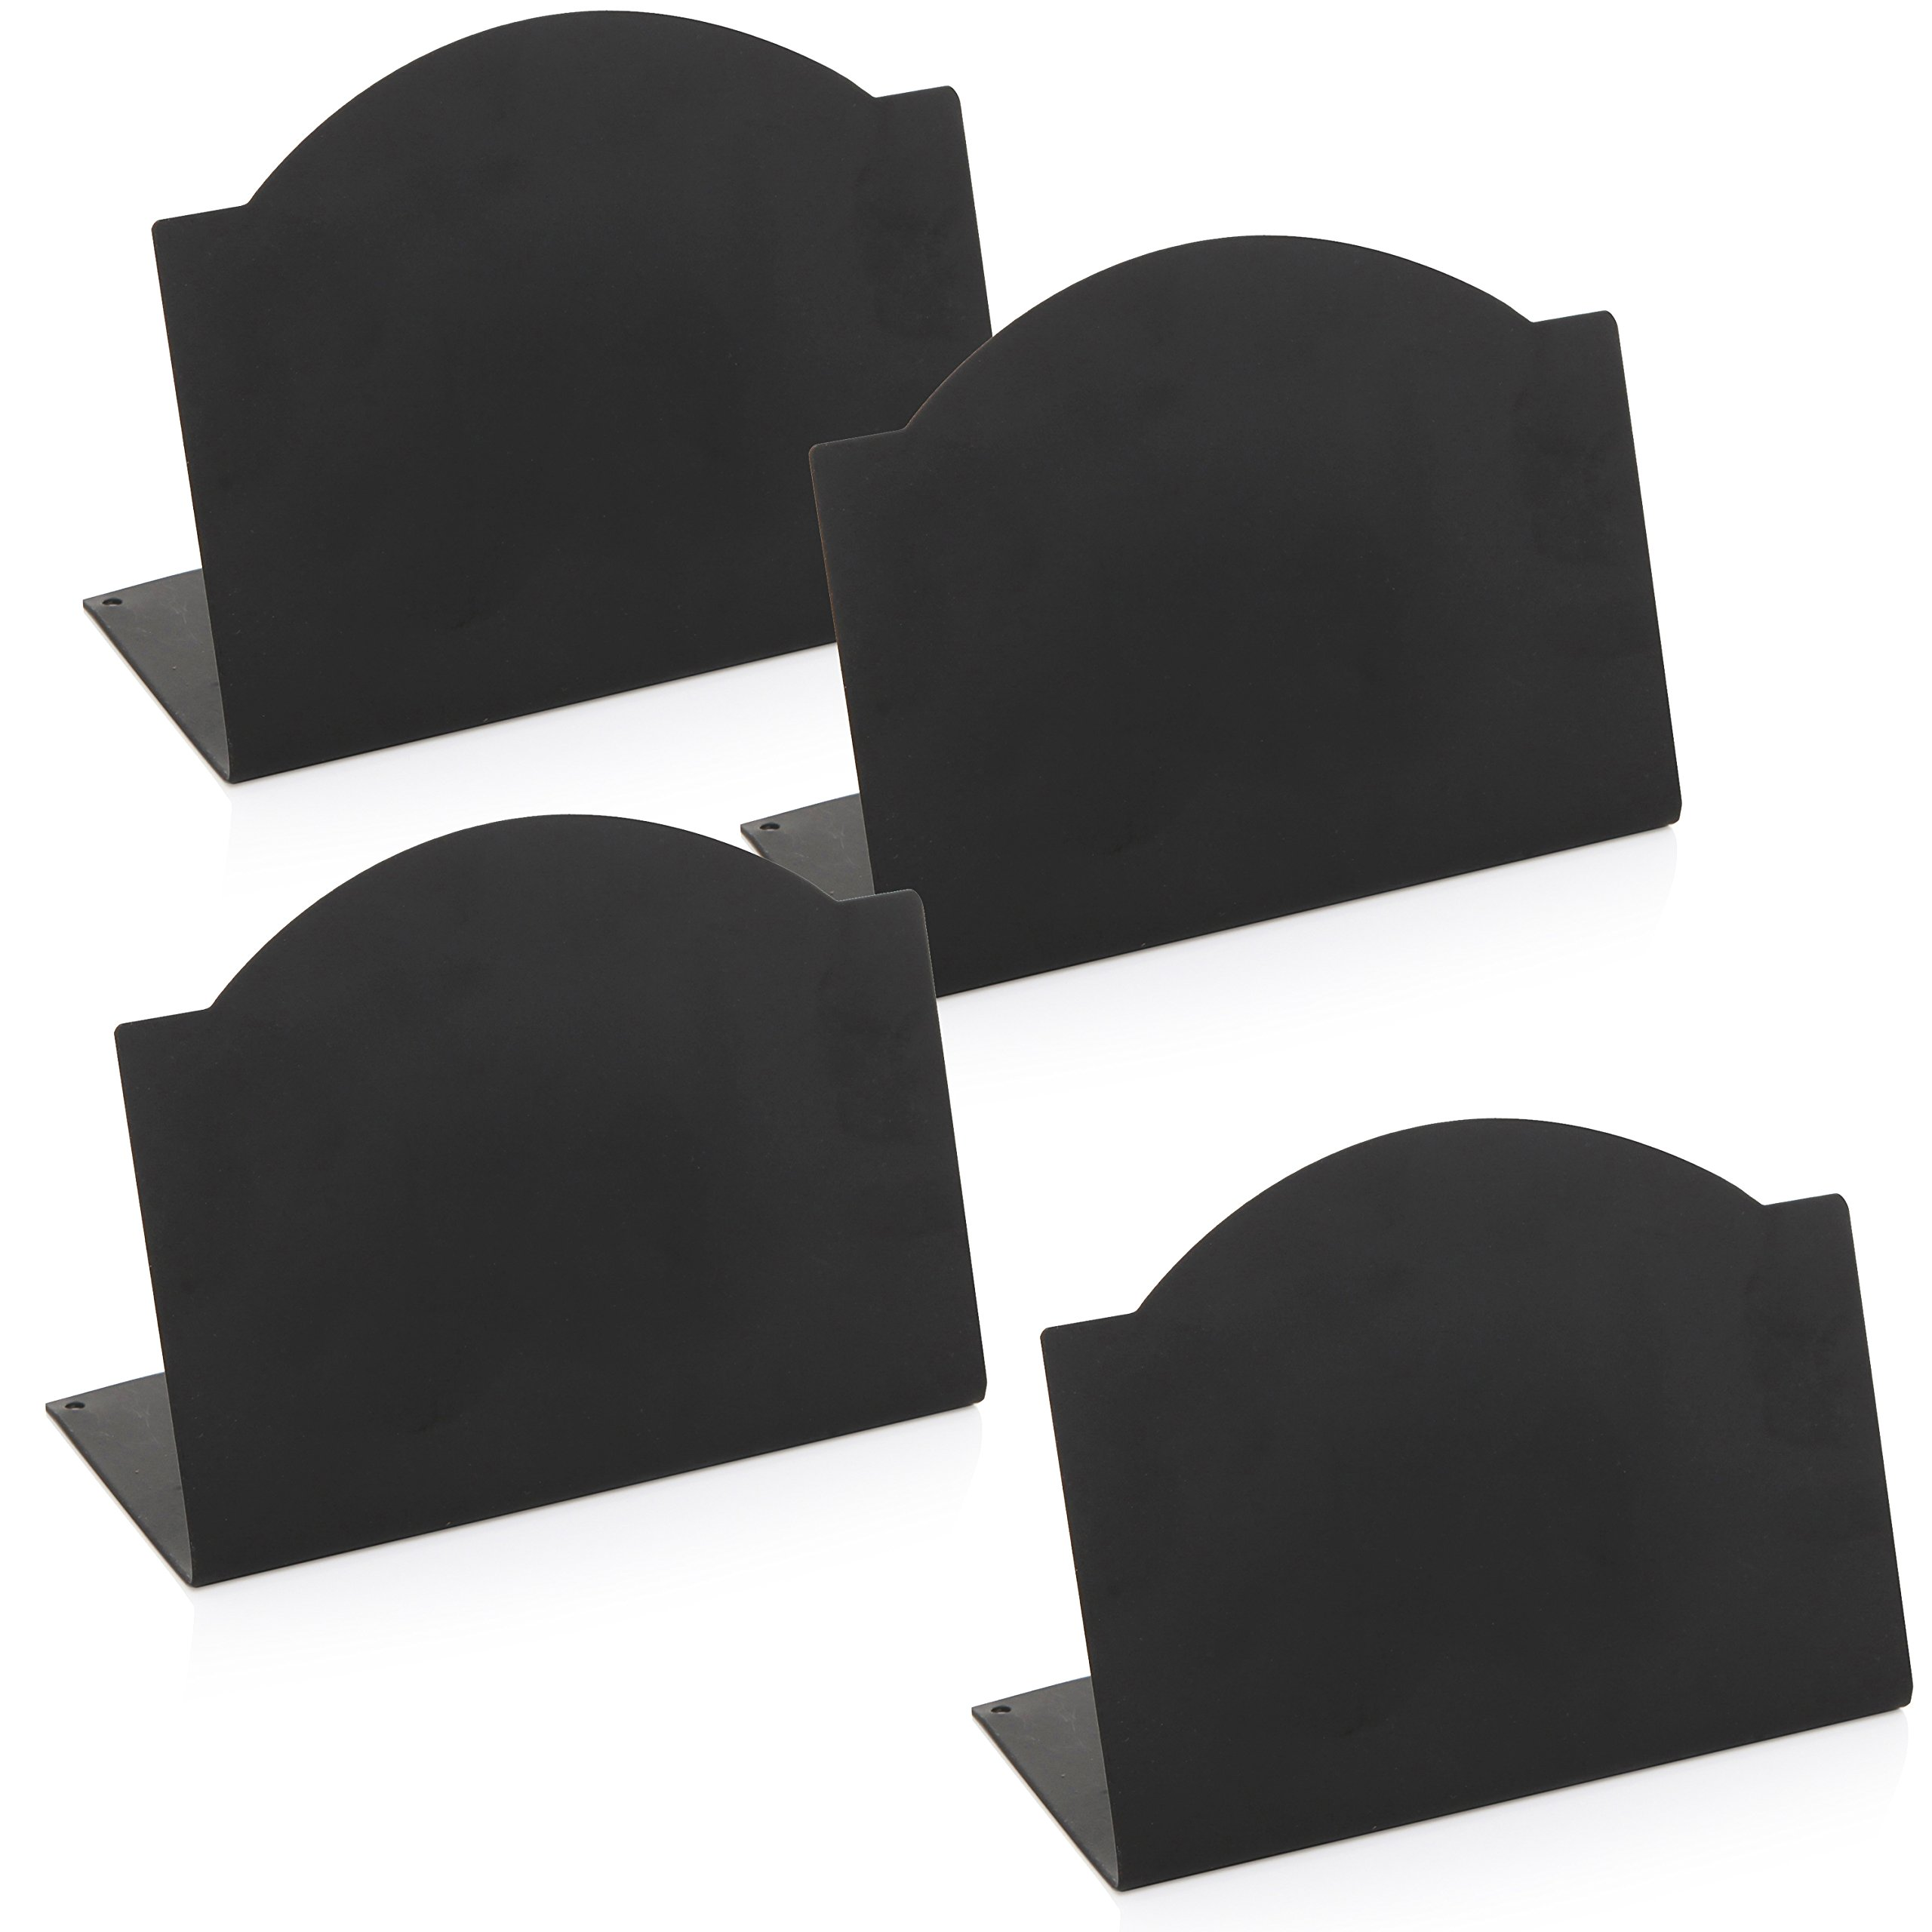 Freestanding Black Metal Erasable Chalkboard Place Card Signs, Small Memo Boards, (Set of 4) by MyGift (Image #4)